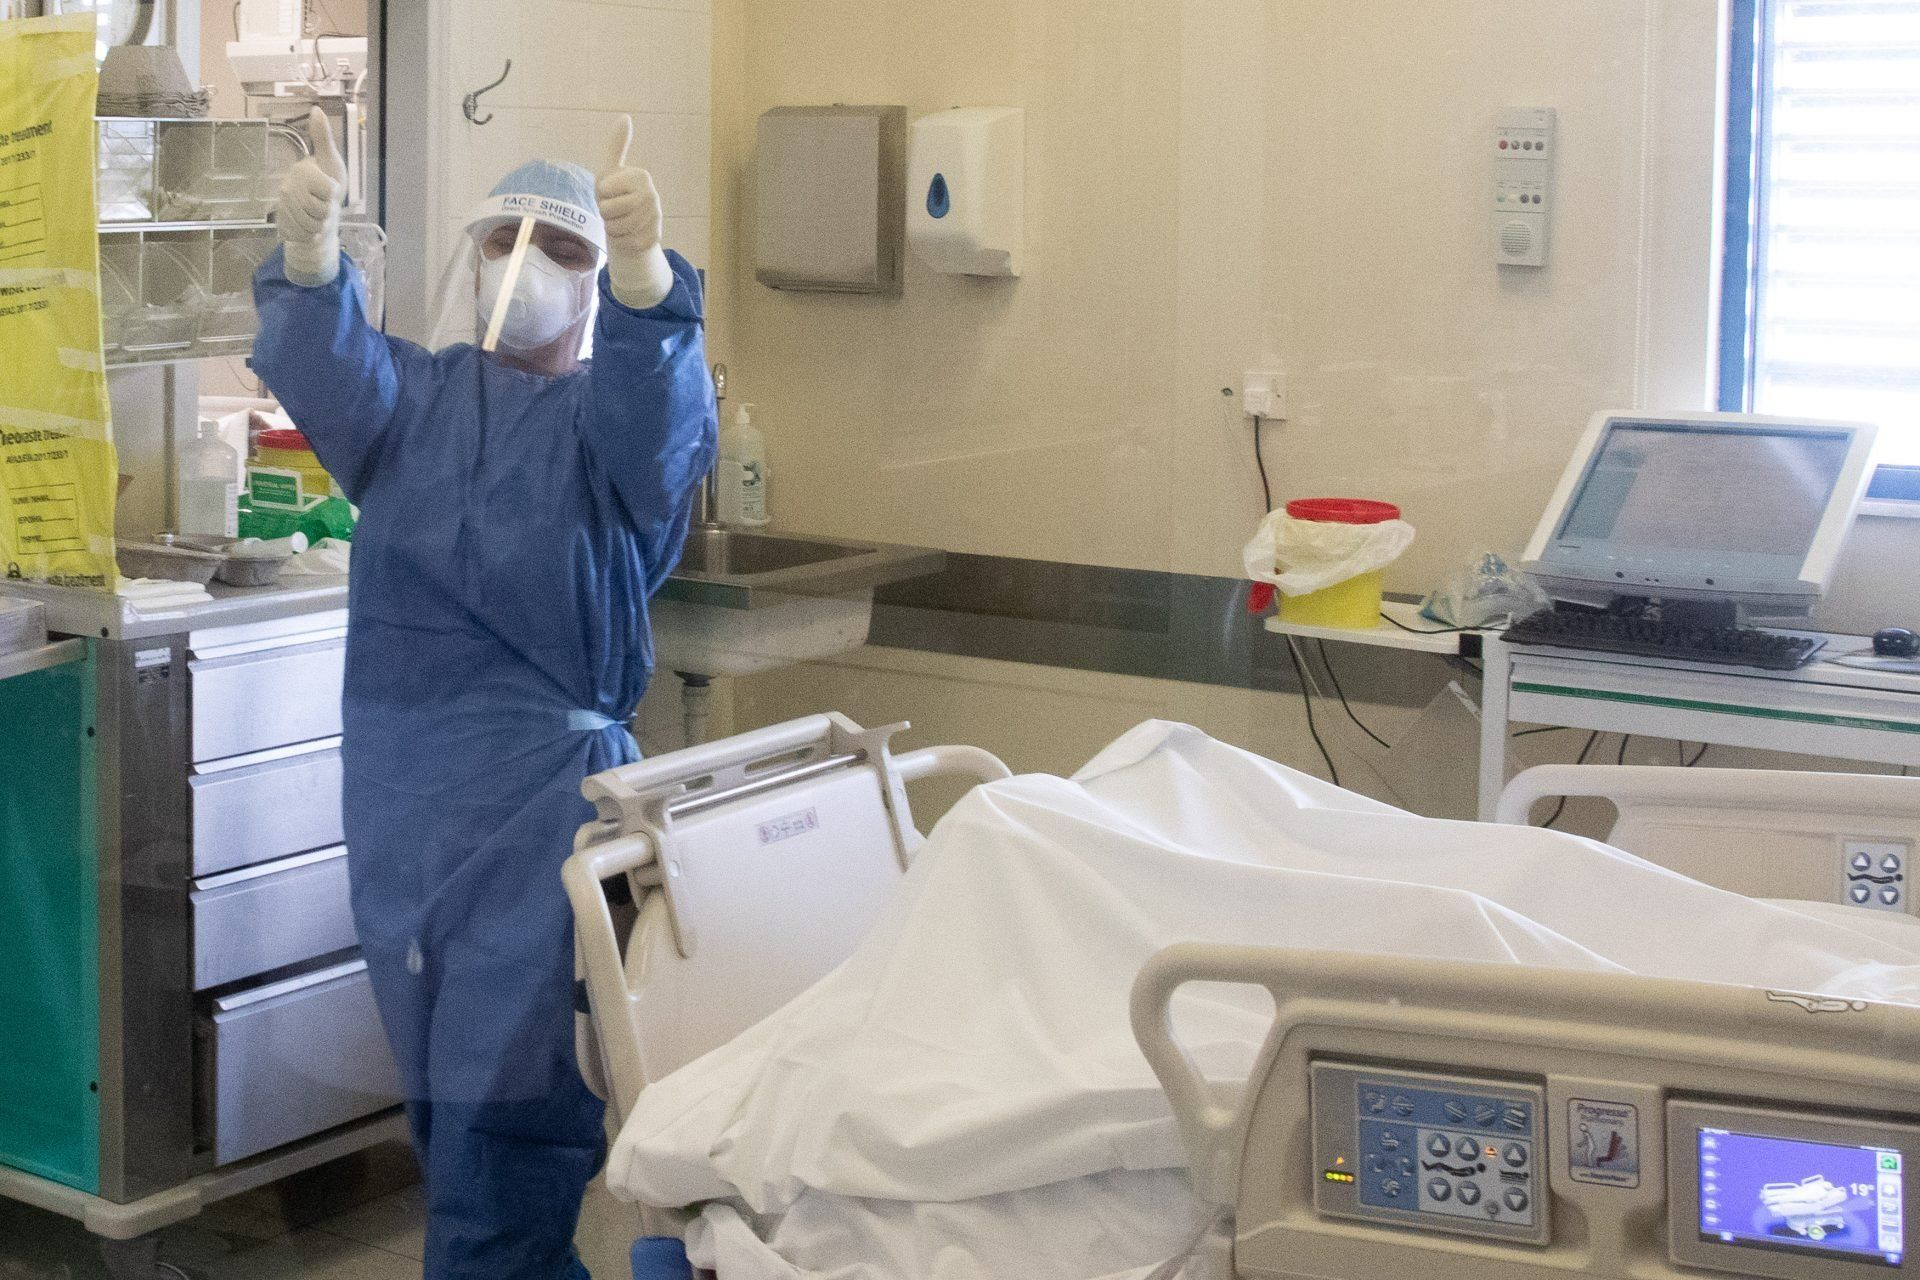 Now Is A Good Opportunity For The Government To Invest In Modern And Well Equipped Hospitals 1920x1280 1